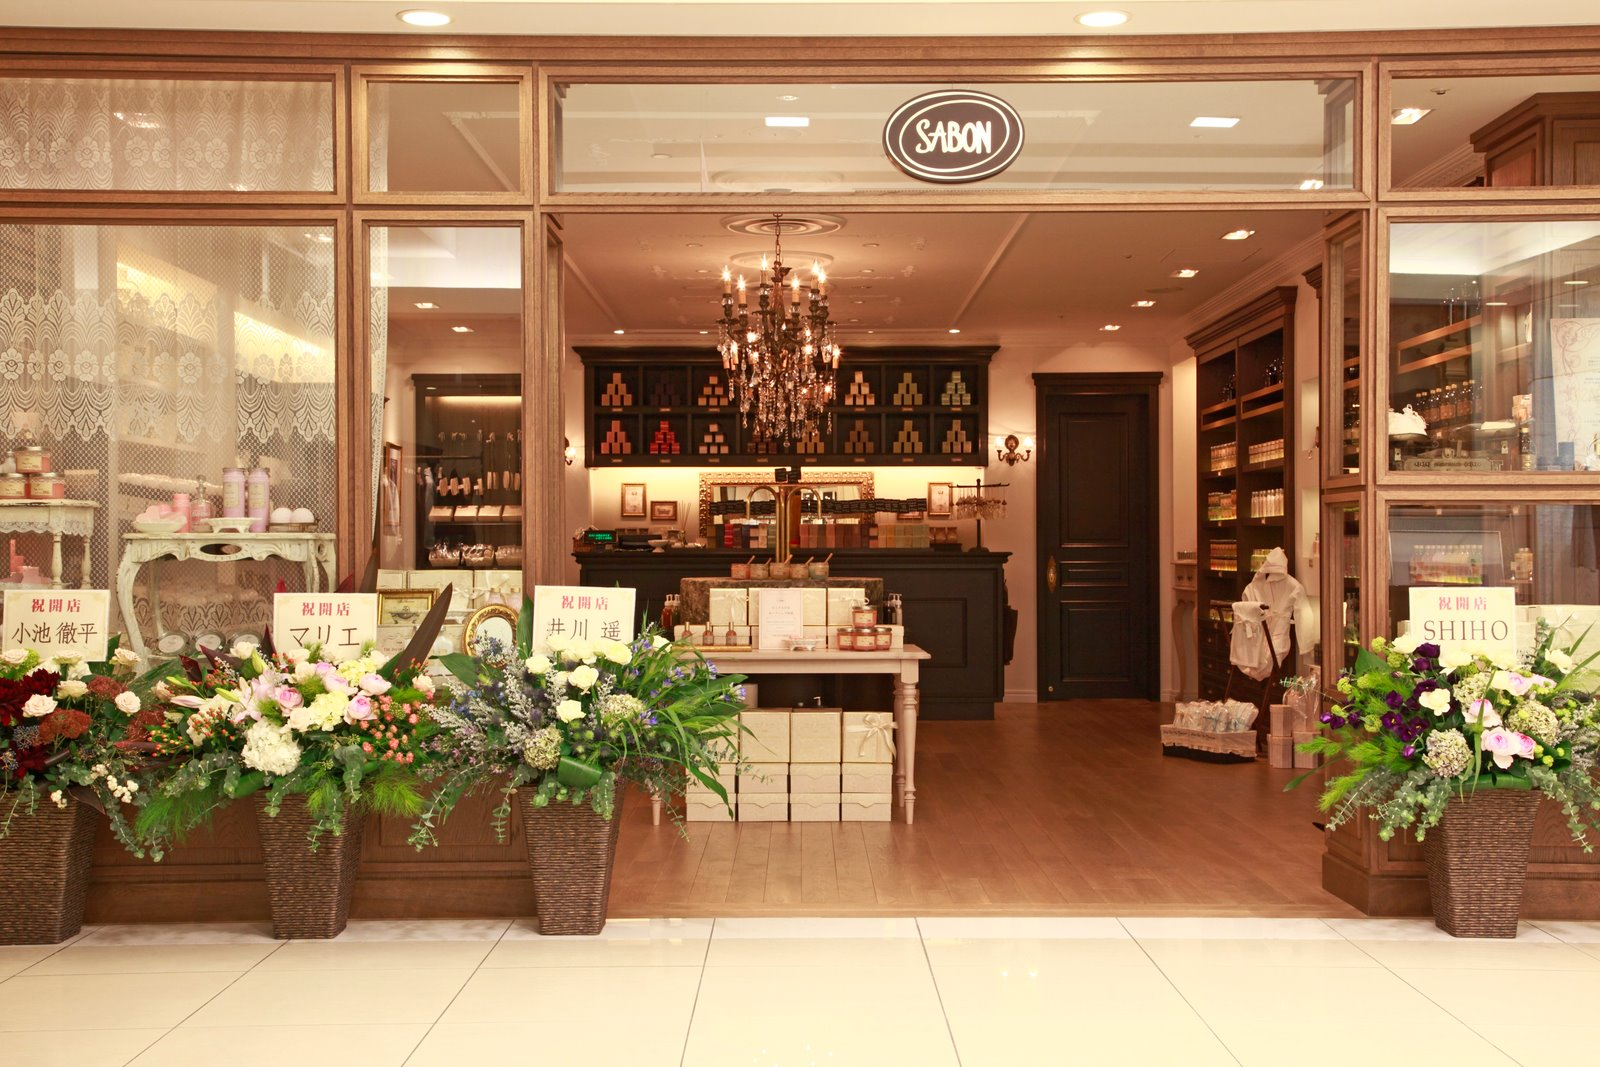 Sabon shops are classic beautifully lit boutiques furbished in natural materials, and decorated with stylish chandeliers and mirrors. Expect a romantic atmosphere thanks to our aromatherapy-rich fragrances and gentle music,all of whichhelps enrich our unique all-sensory shopping experiences.